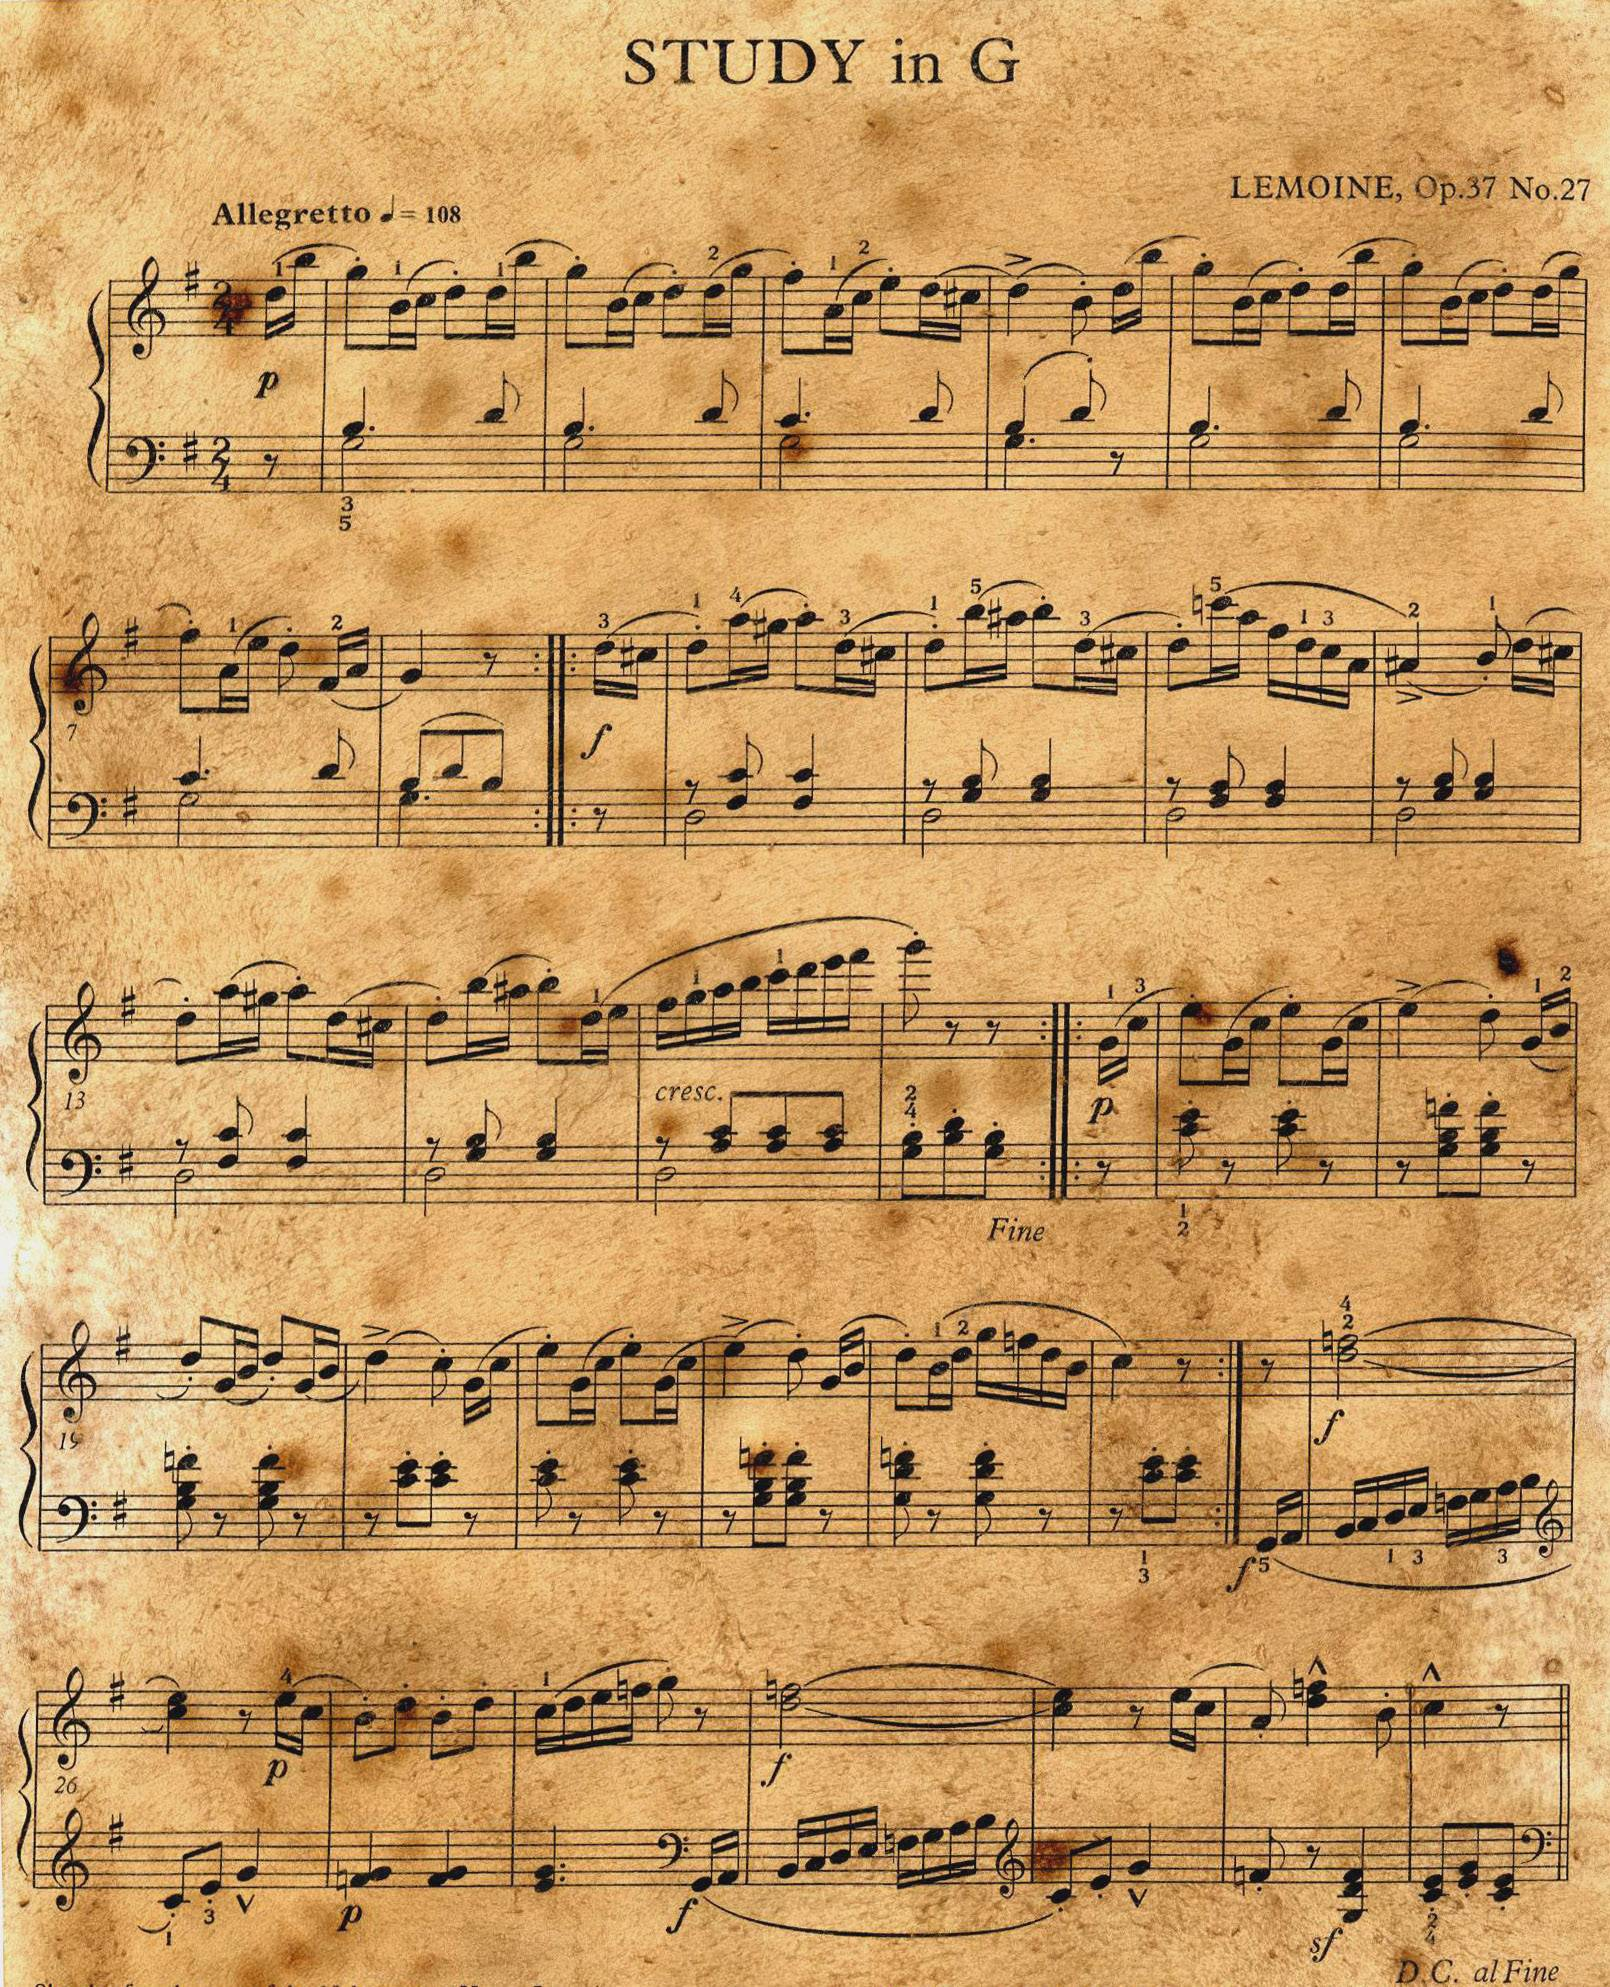 sheet music 2 wallpaper - photo #11